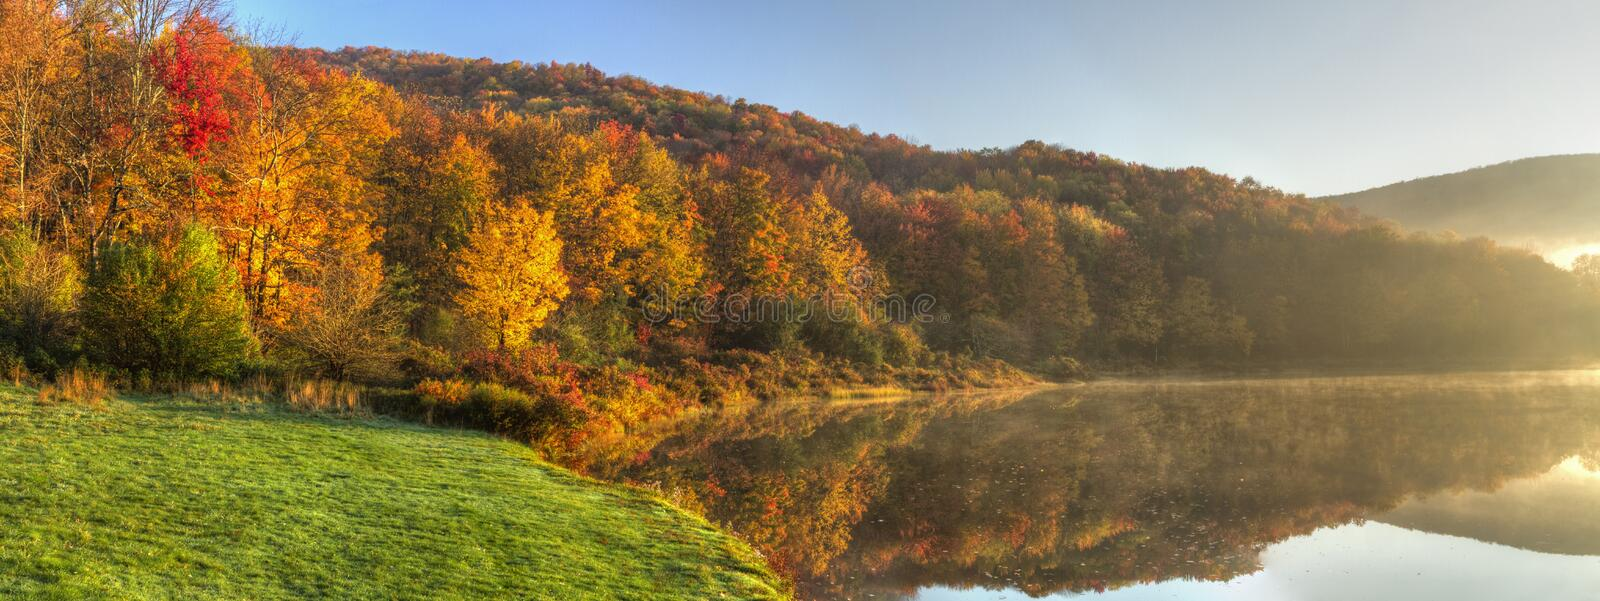 Alder Lake Morning Fog Panorama. Sunlight burning off the morning fog on Alder Lake on a colorful Autumn day in the Catskills Mountains of New York royalty free stock photos